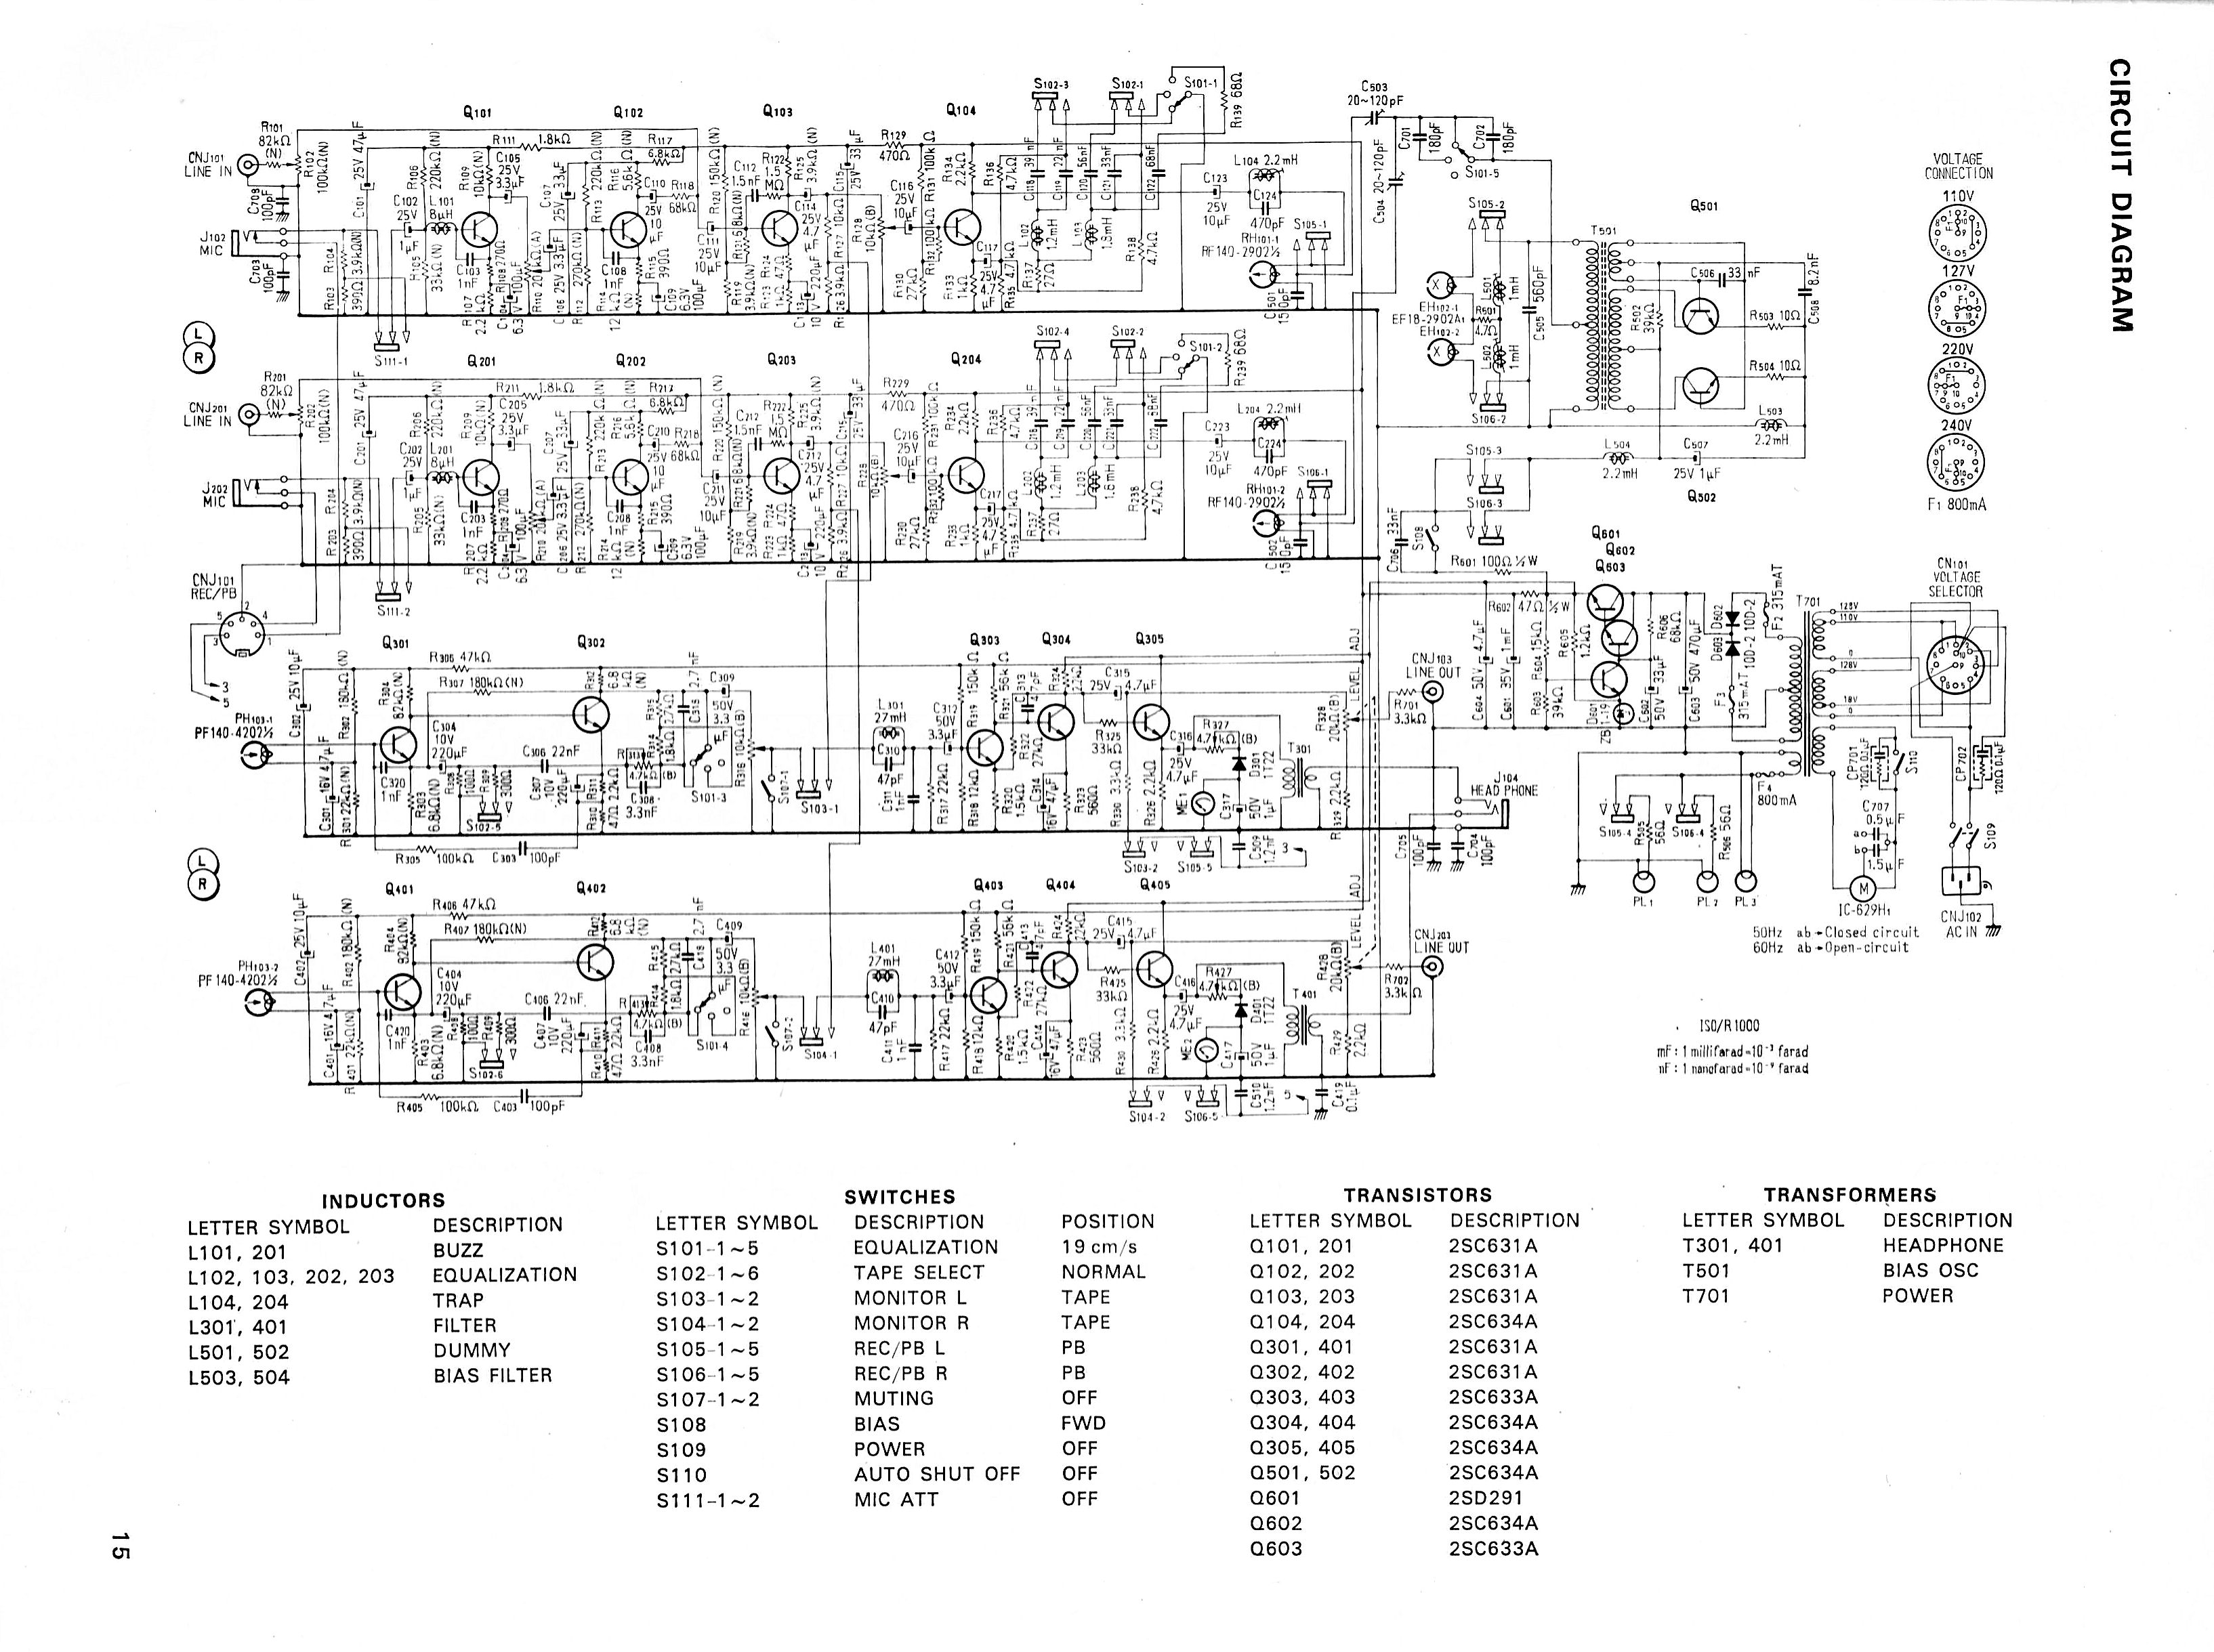 sony tc 500a wiring diagram wiring librarya lifelong reel obsession neville roberts recalls the tape decks sony xplod 50wx4 wiring diagram sony tc 500a